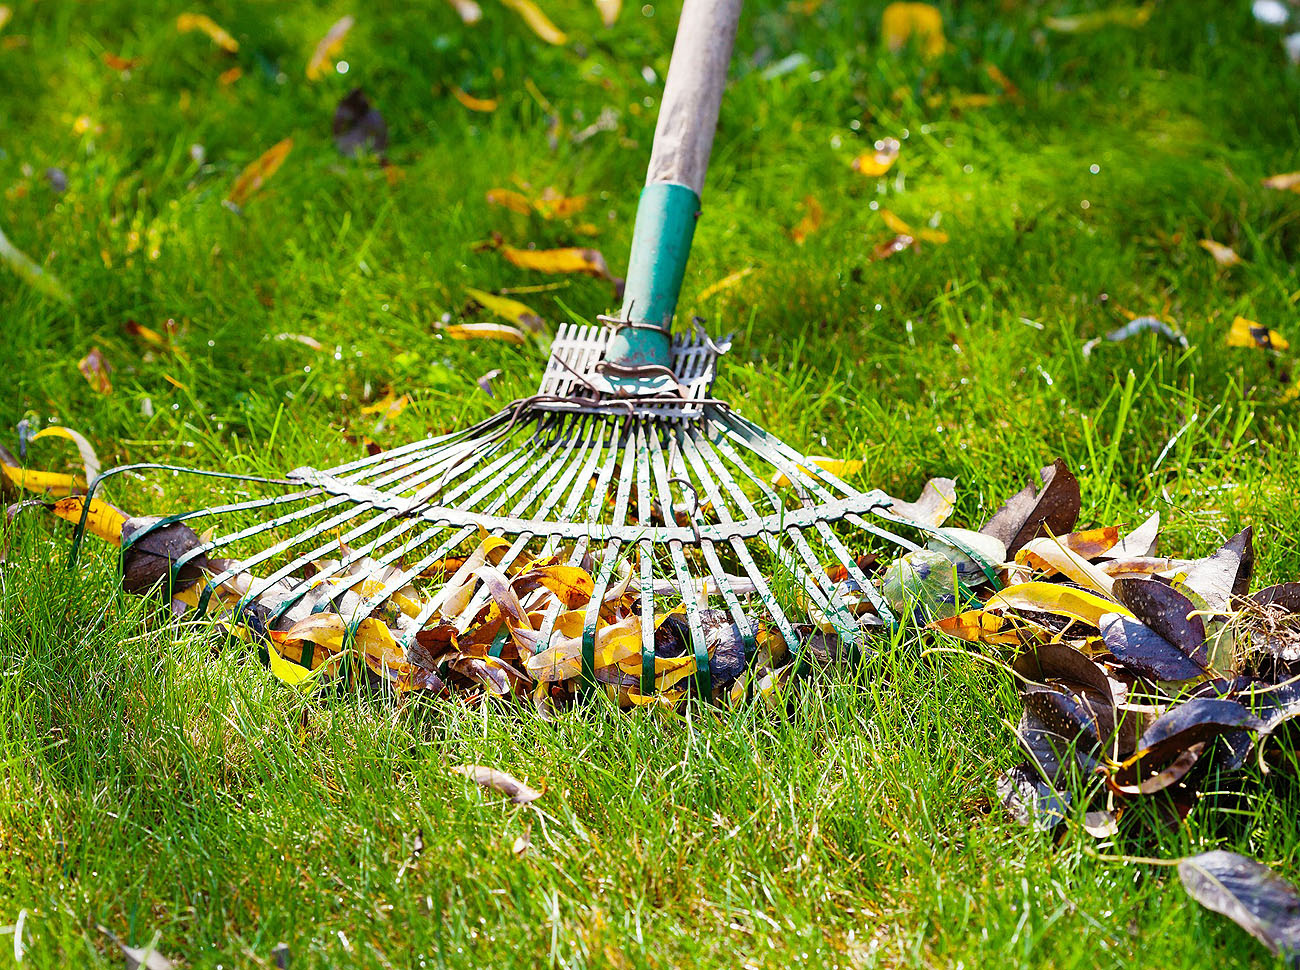 We carry out lawn treatments 2-3 times a year, once in the spring, once in the summer and then once in the autumn. During very dry, hot summers, a mid-summer treatment is not possible with soluble feed.